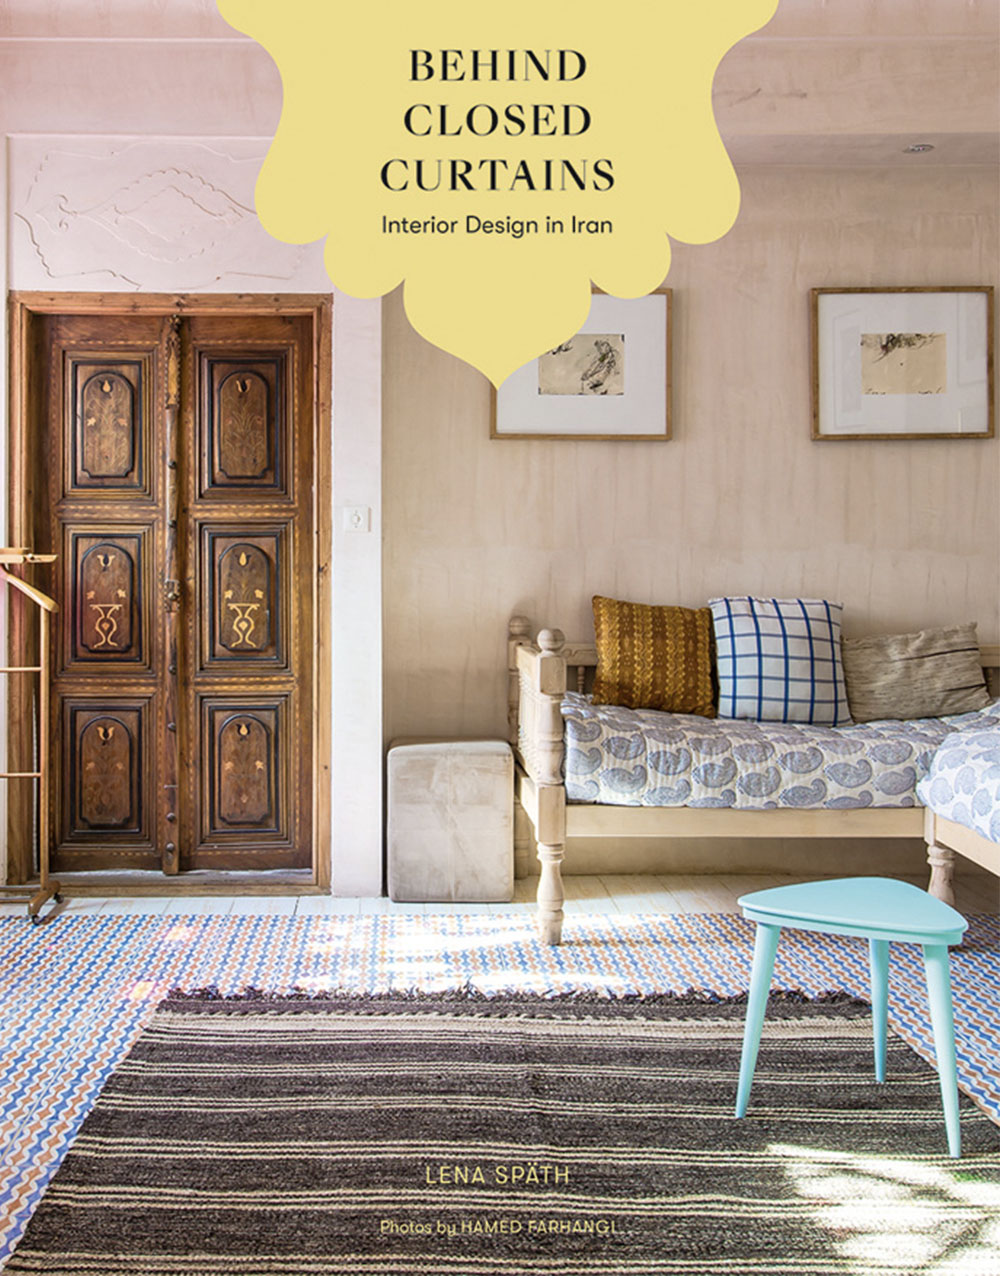 Behind Closed Curtains: Interior Design in Iran, €49.90, available at www.lenaspath.com